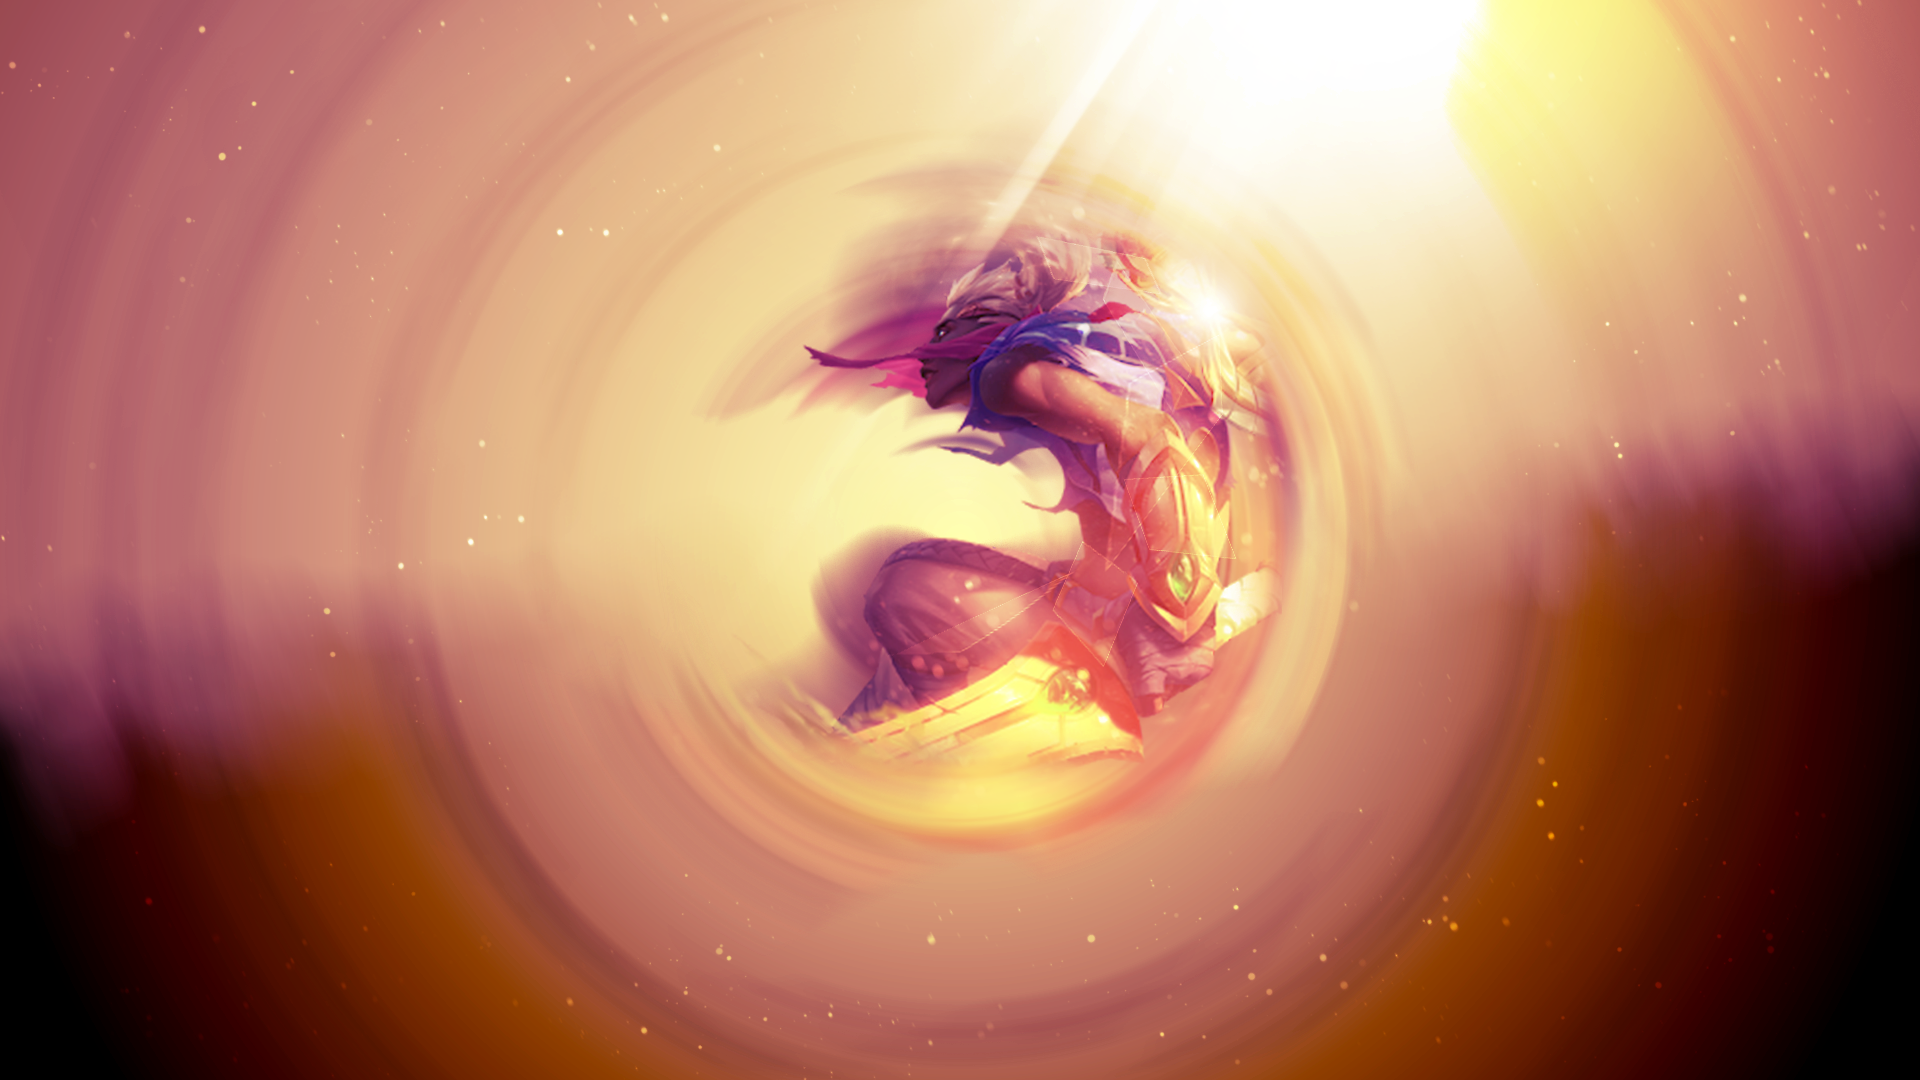 Sandstorm Ekko wallpaper